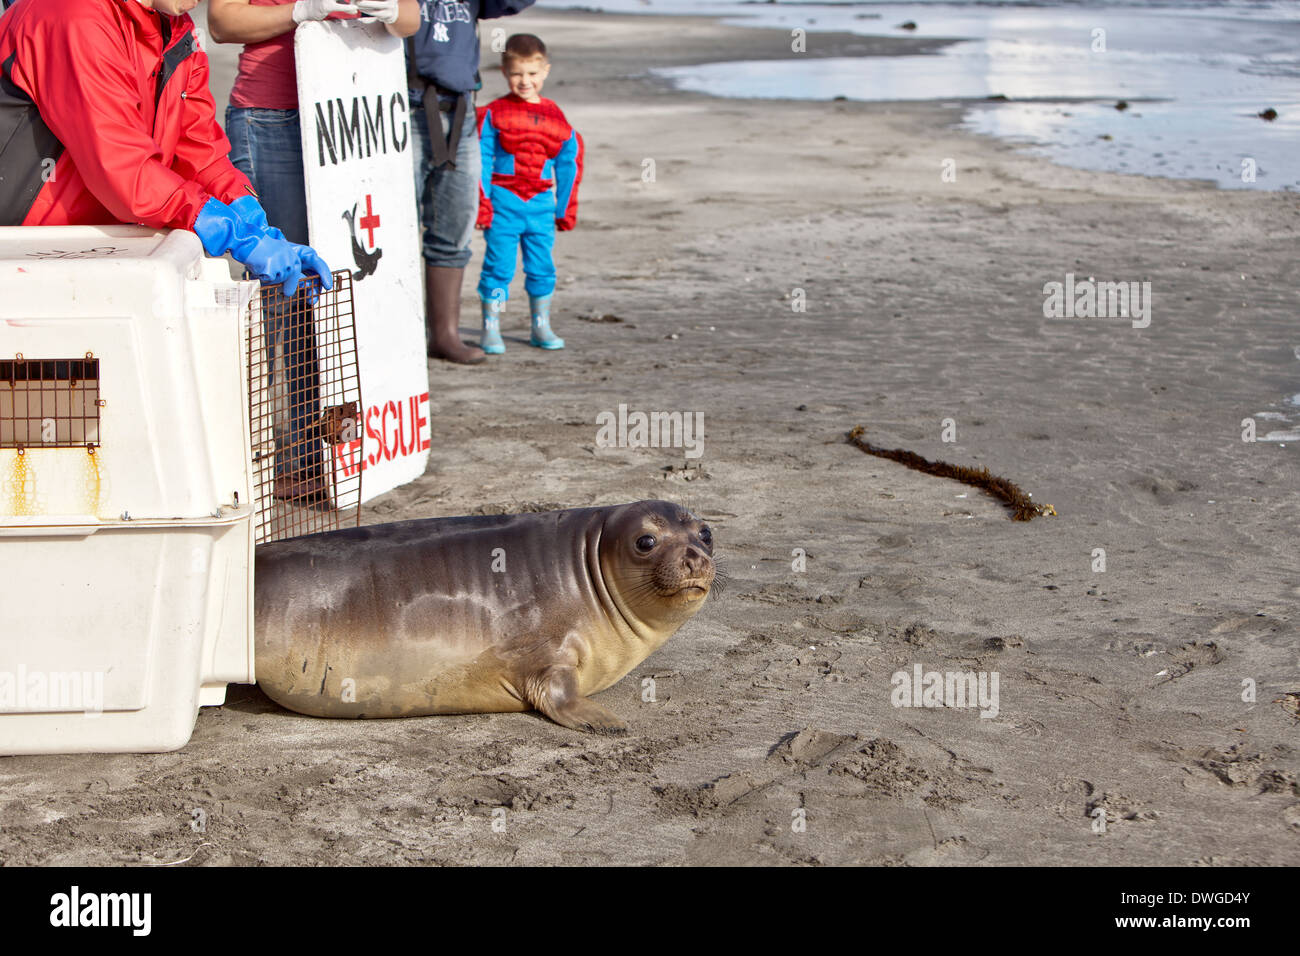 Releasing rescued & rehabilitated young elephant seal. - Stock Image